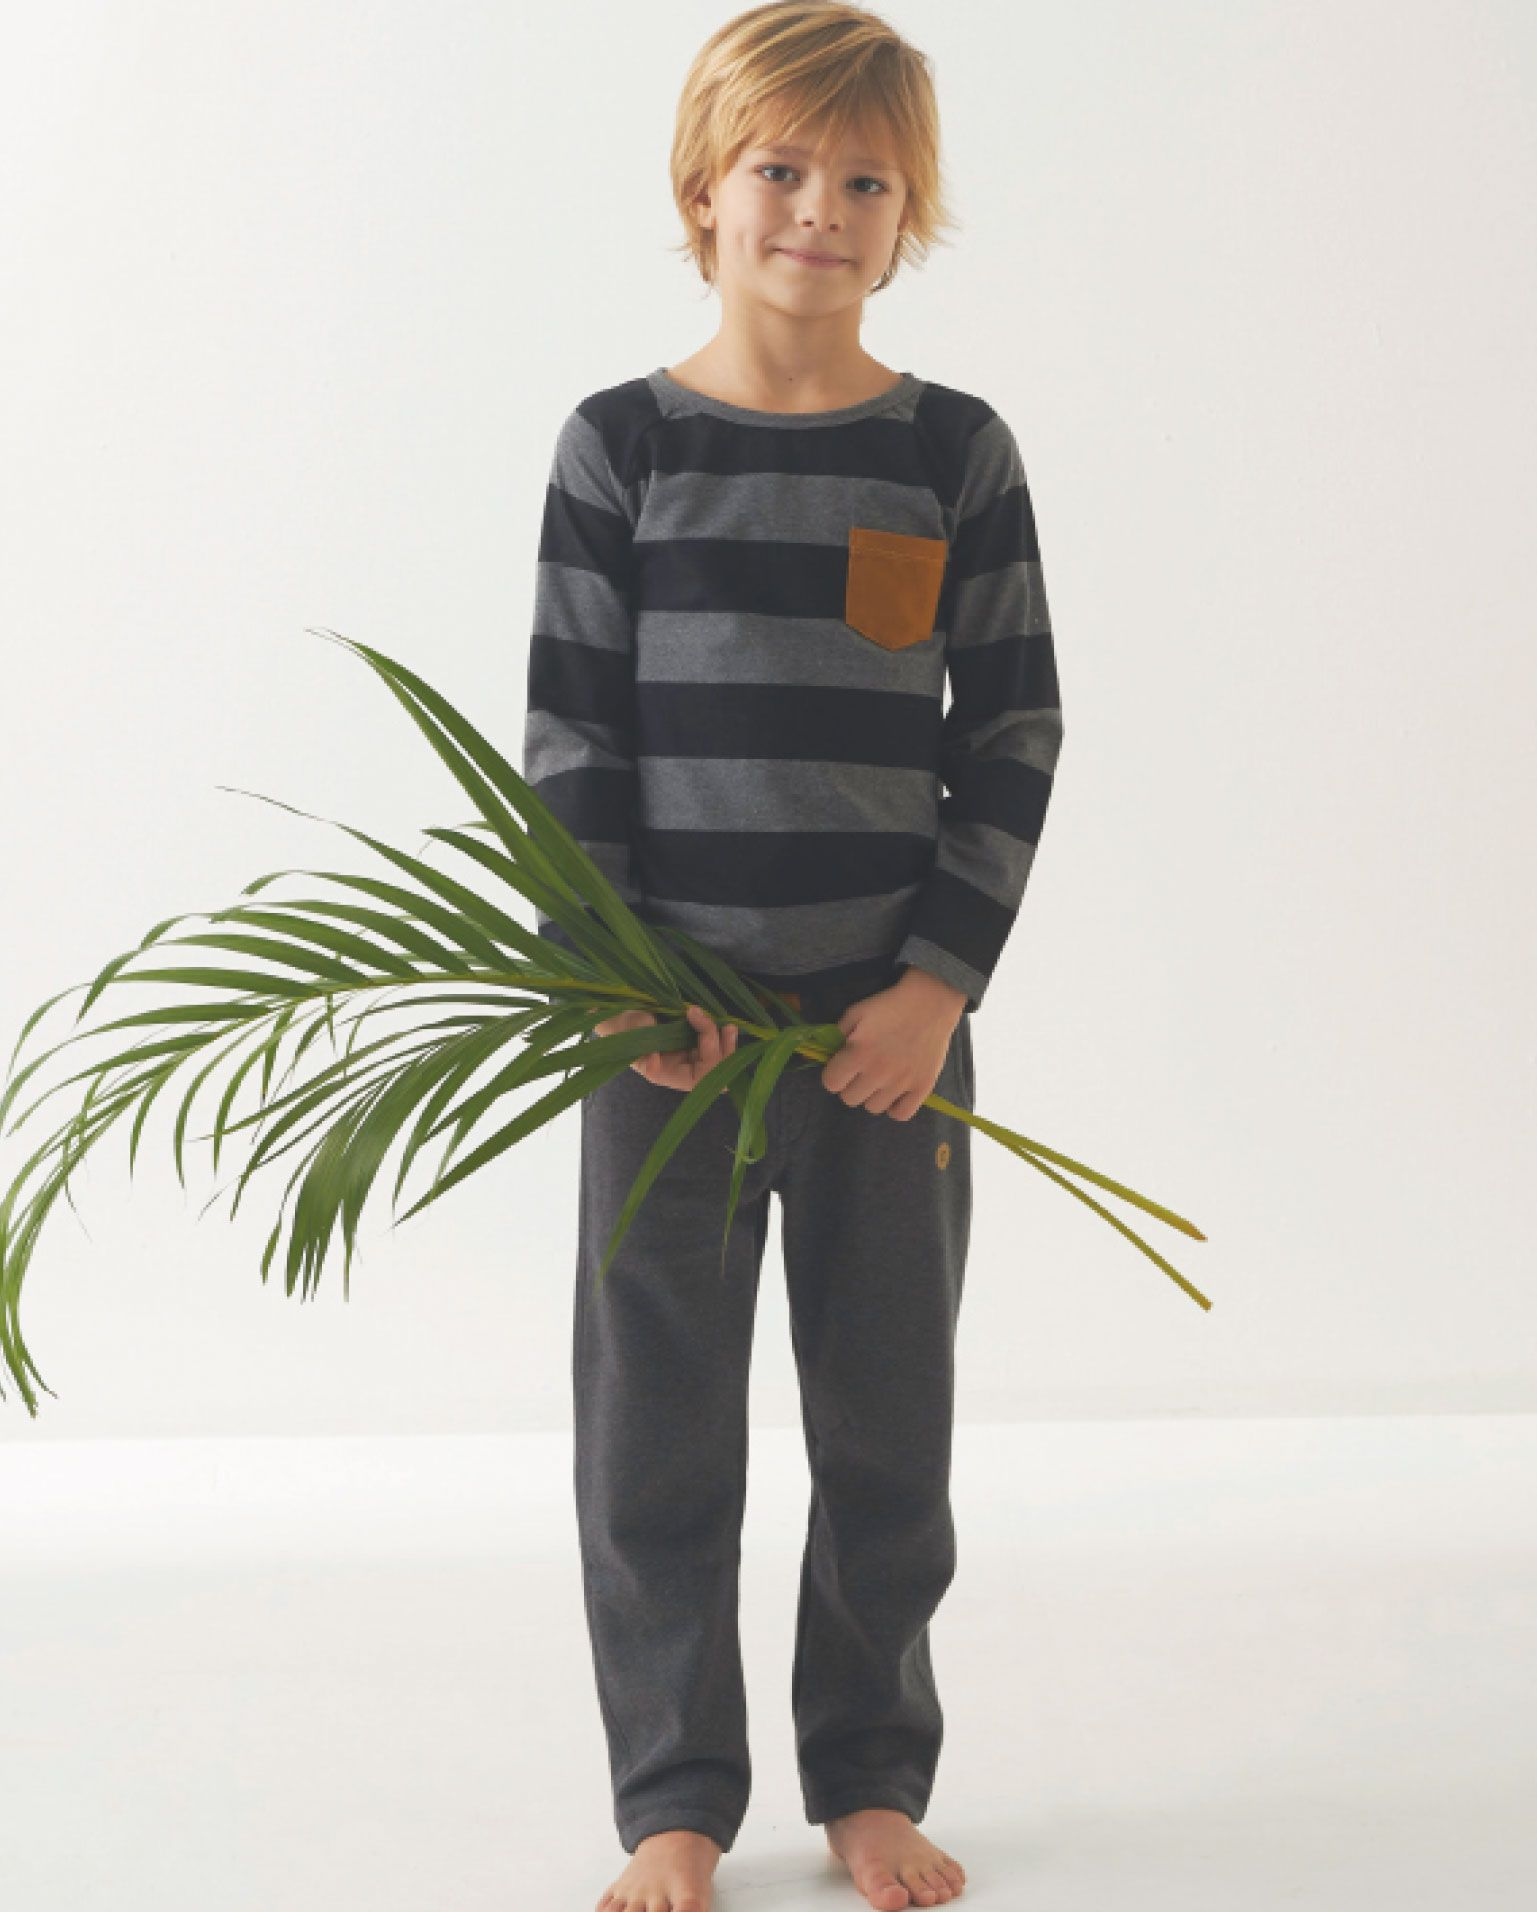 Mister Monkey and Misses Butterfly - baby- en kinderkleding - Lookbook - Inspiratie voor die schattige of stoere look | Mr Monkey & Mrs Butterfly - AW16 - T-shirt - Stripes - Grey